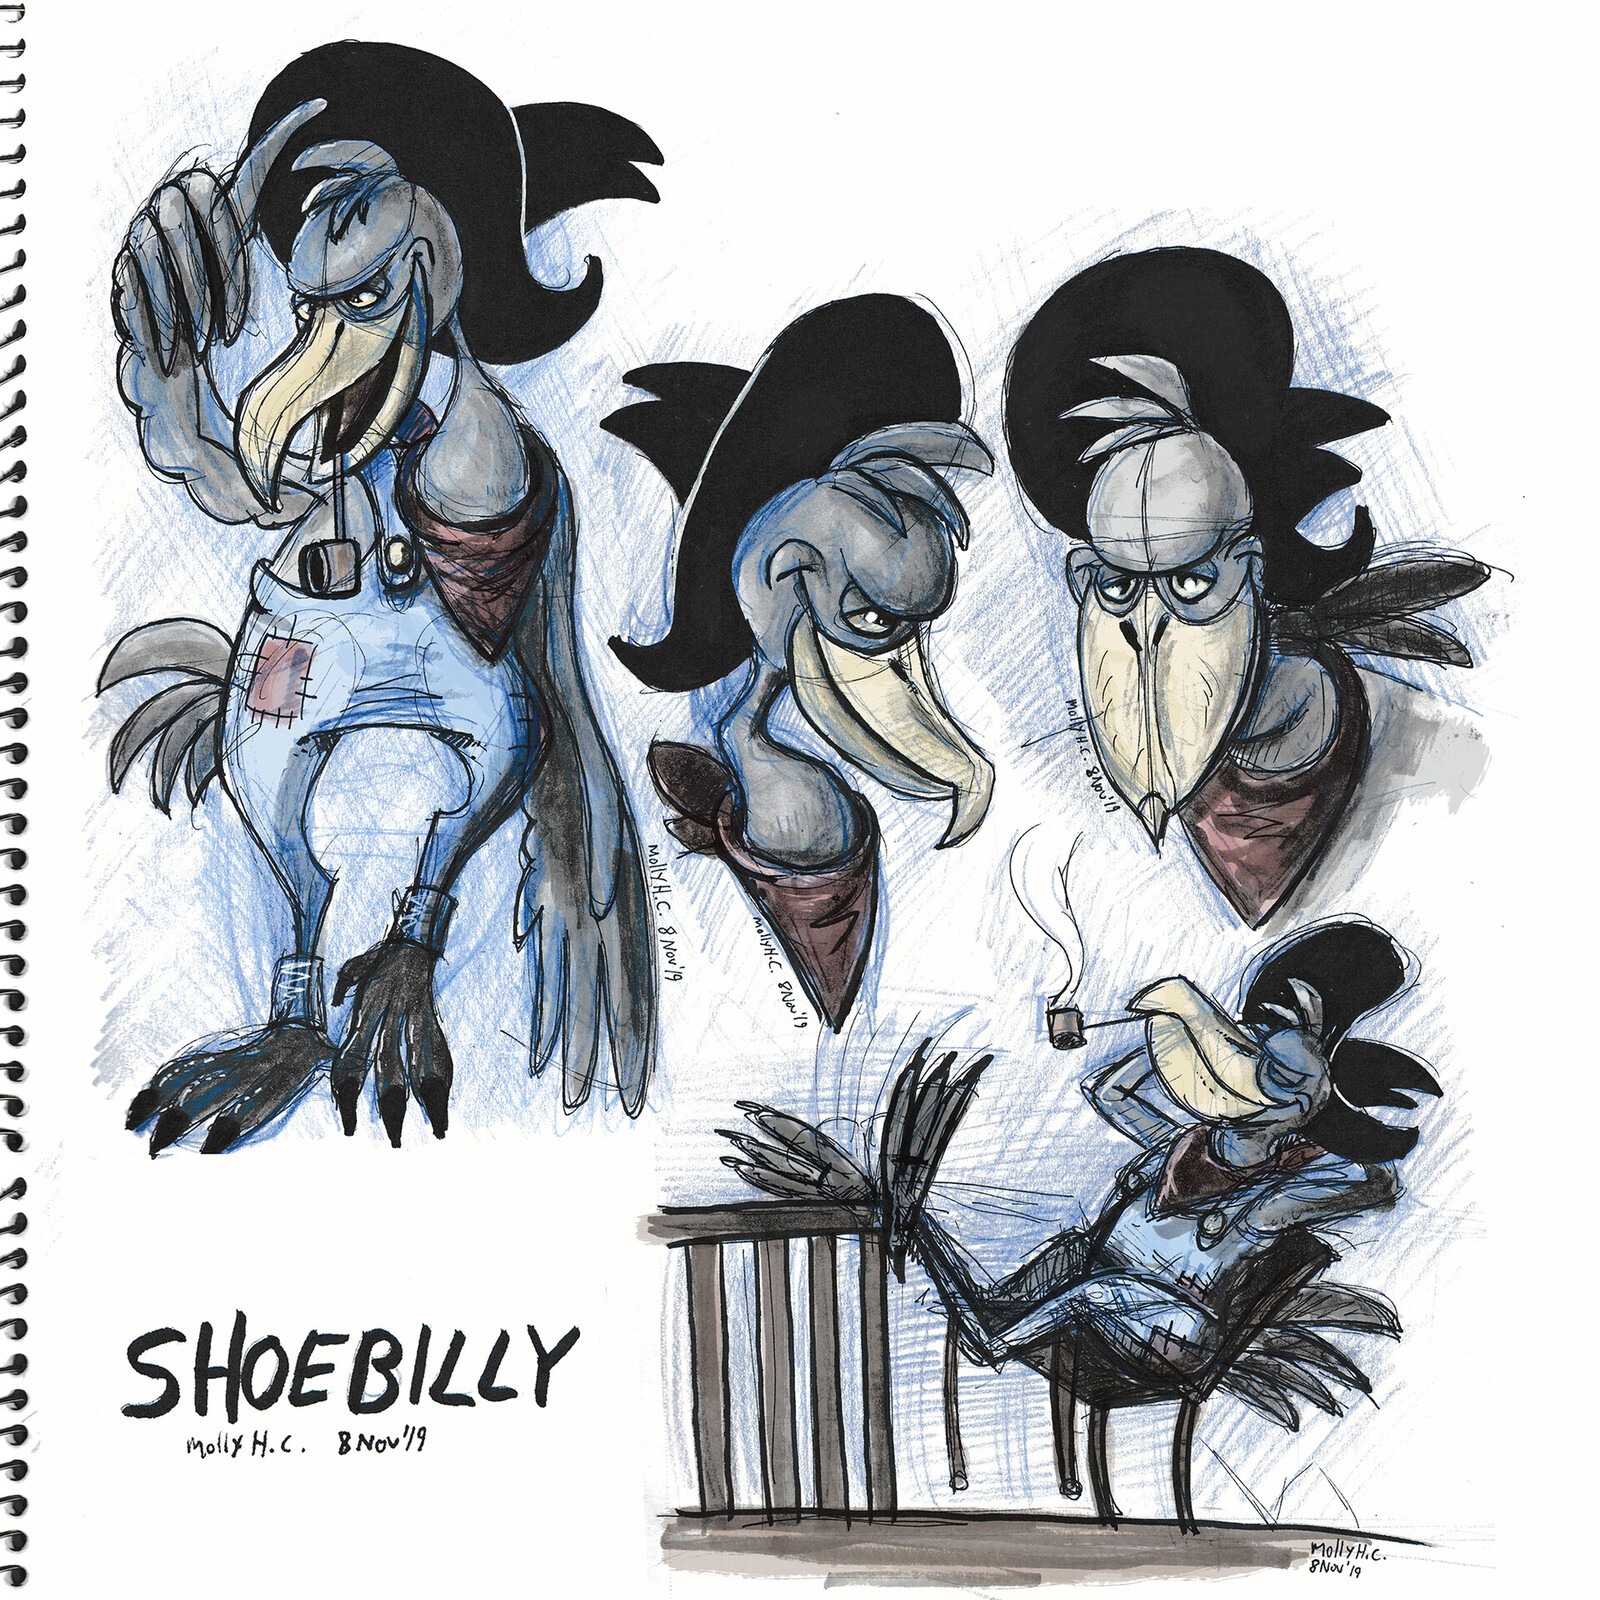 Shoebilly Character Design Sketches (2019)